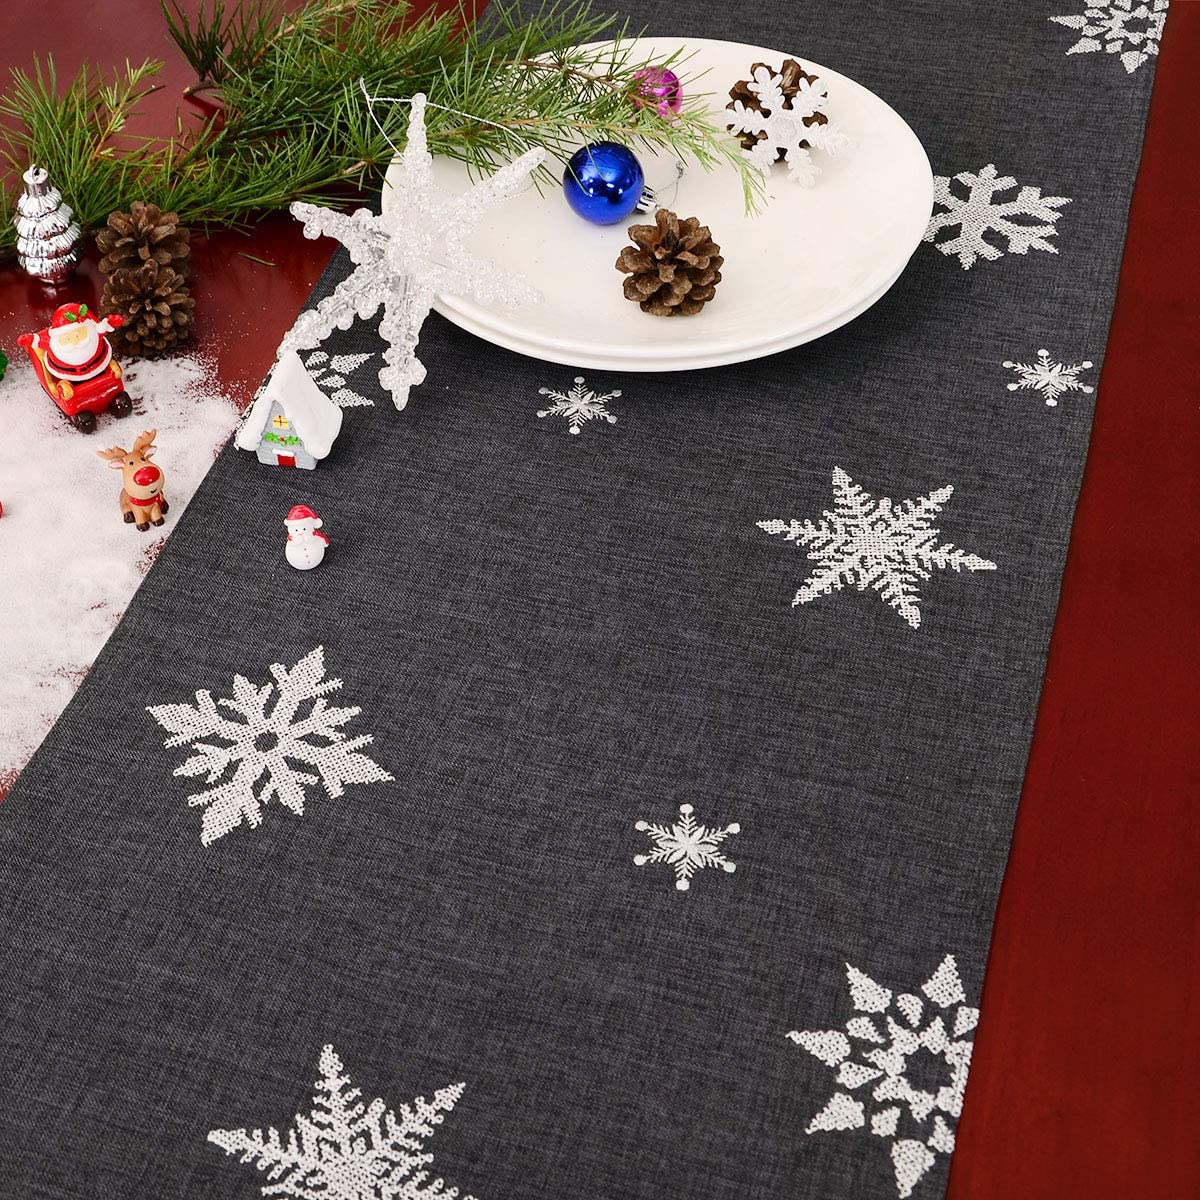 14 x 34 inches Grelucgo Dark Gray Cross-Stitching Snowflakes Table Runner for Christmas and Winter